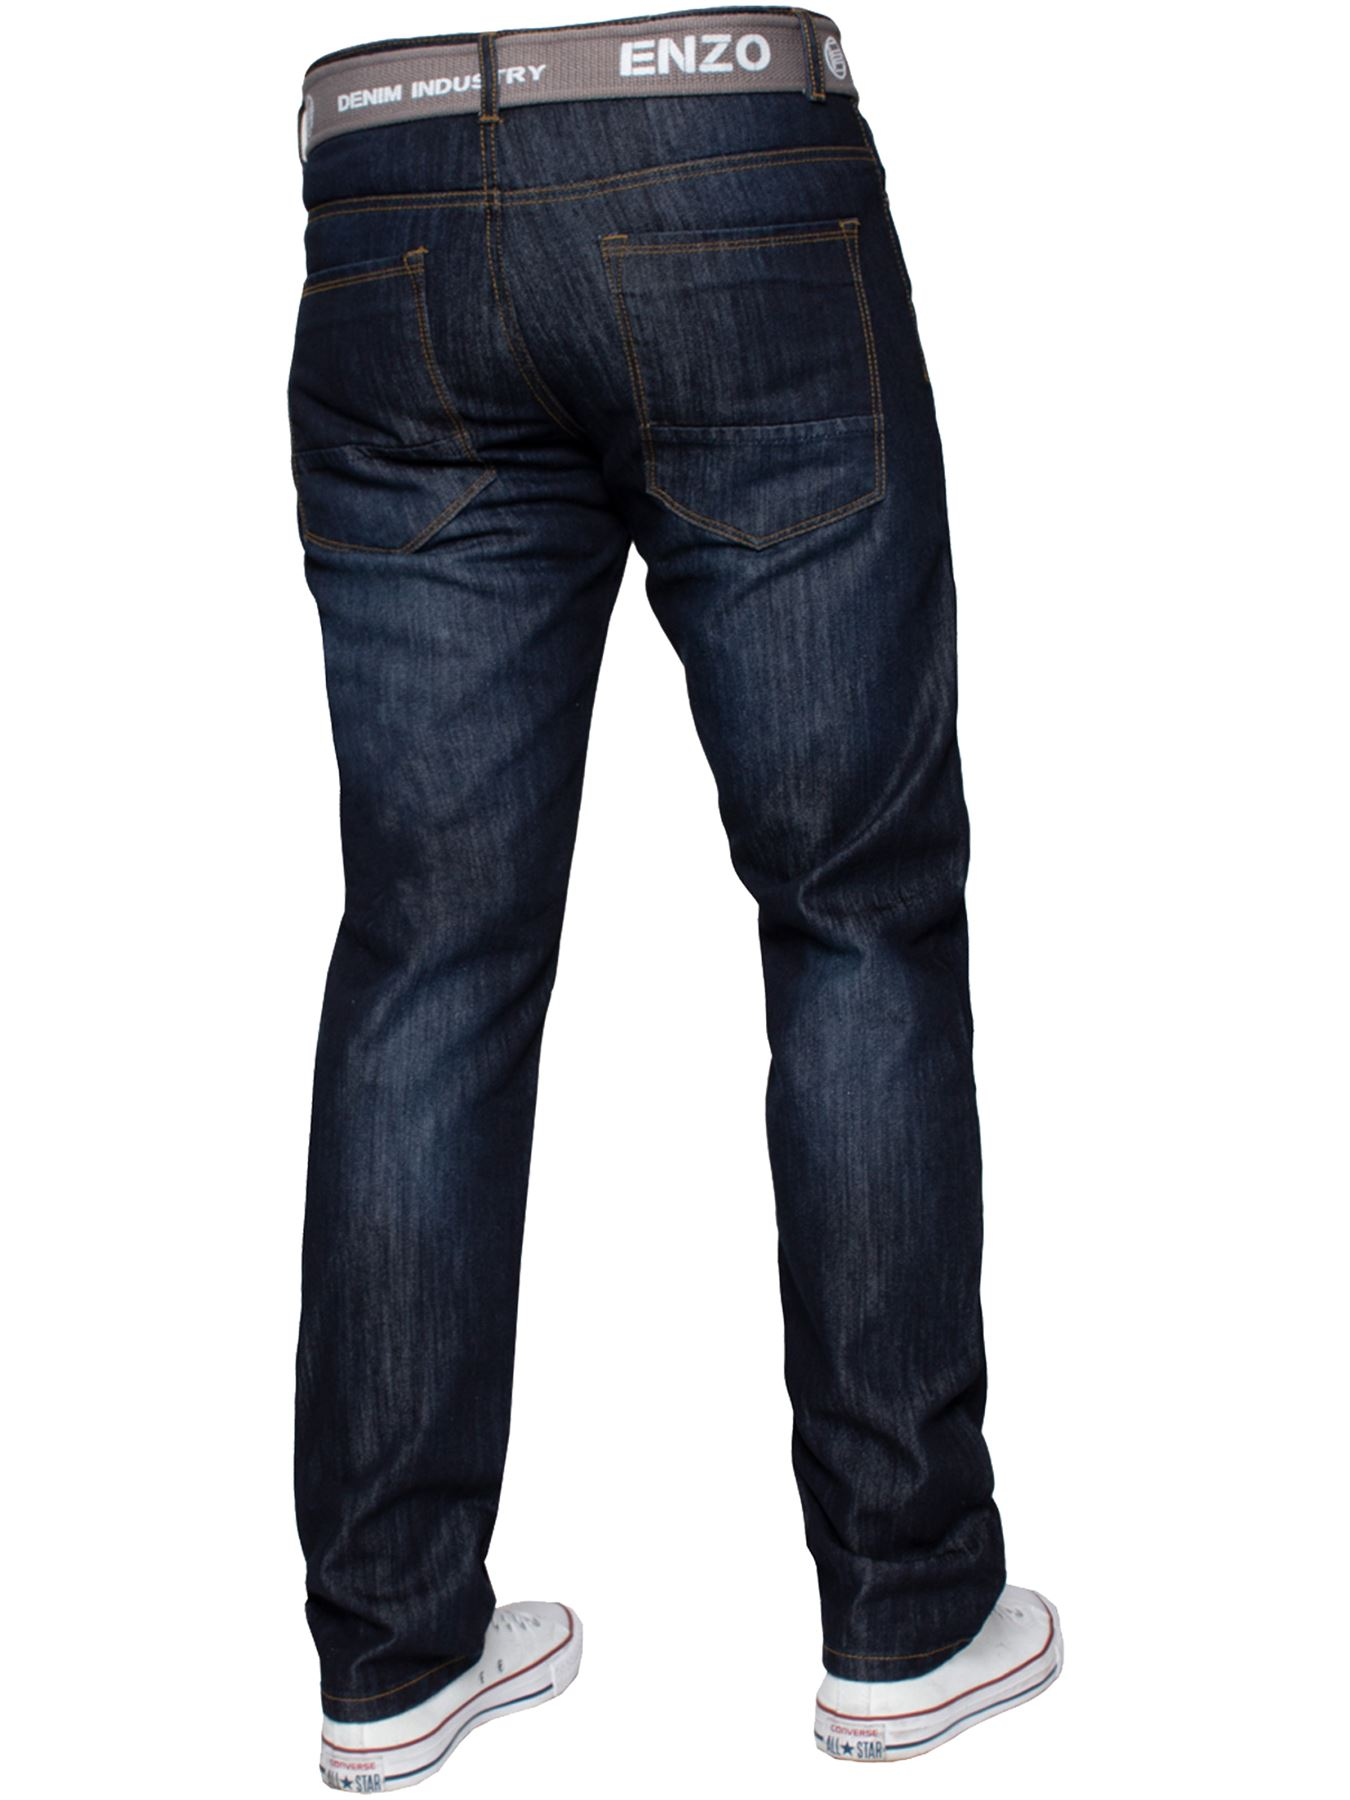 Enzo-Mens-Straight-Leg-Jeans-Regular-Fit-Denim-Pants-Big-Tall-All-Waists-Sizes thumbnail 17